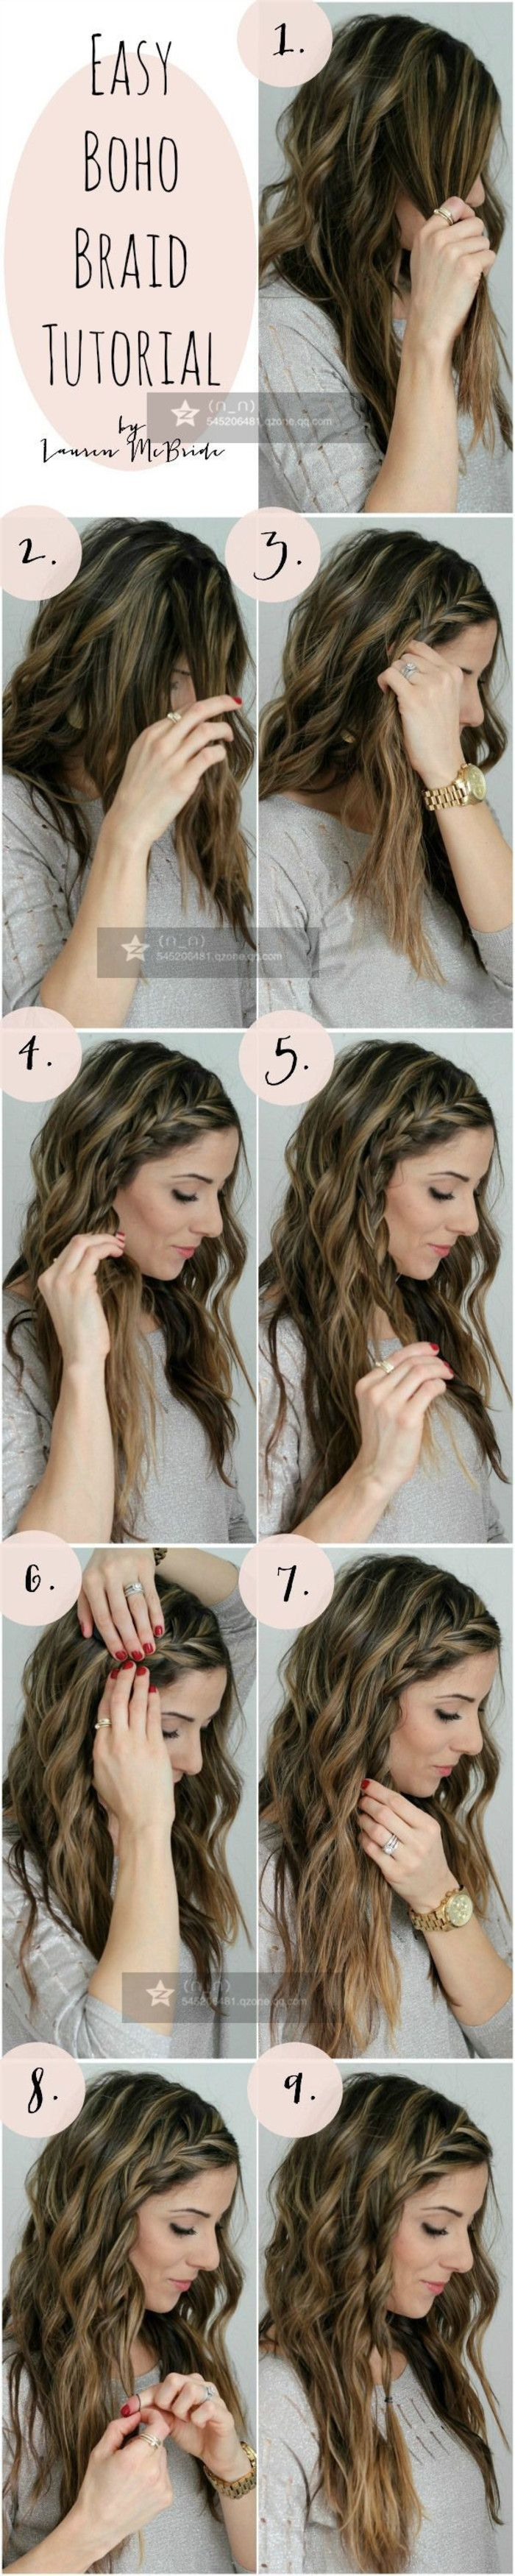 618 best Hair Pictorial images on Pinterest